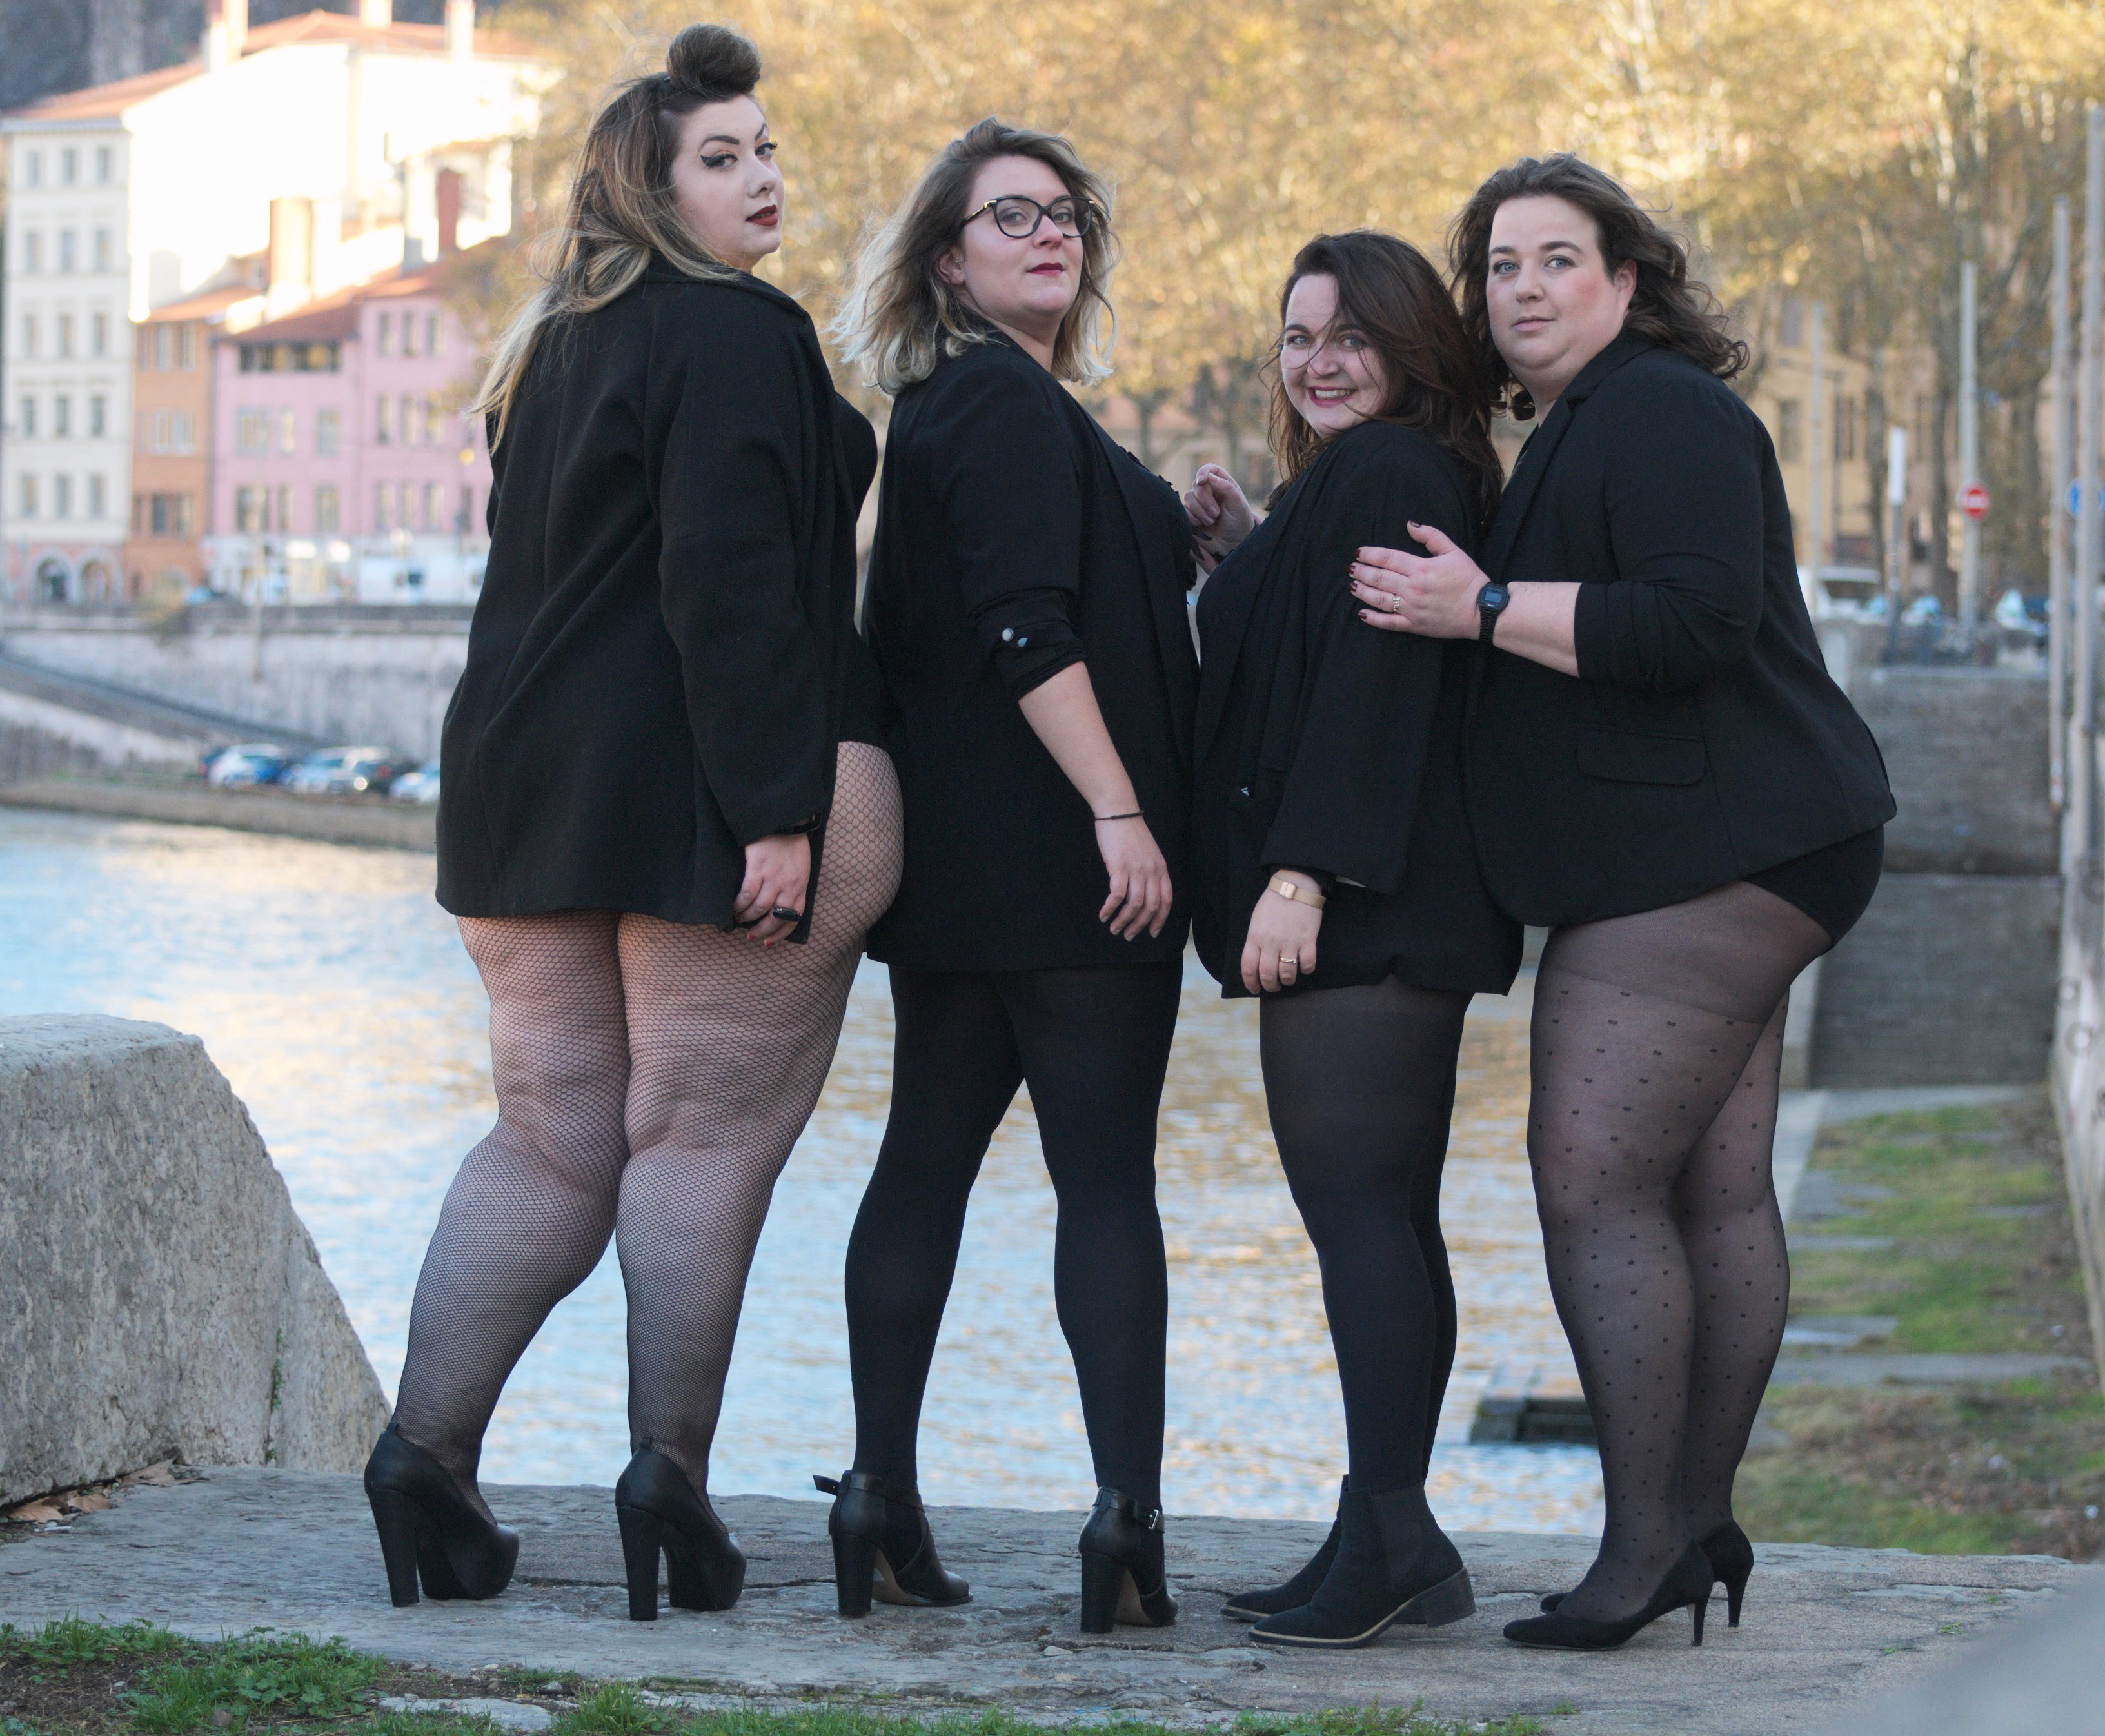 curvy gang army plus size bbw lyon chubby girl blog